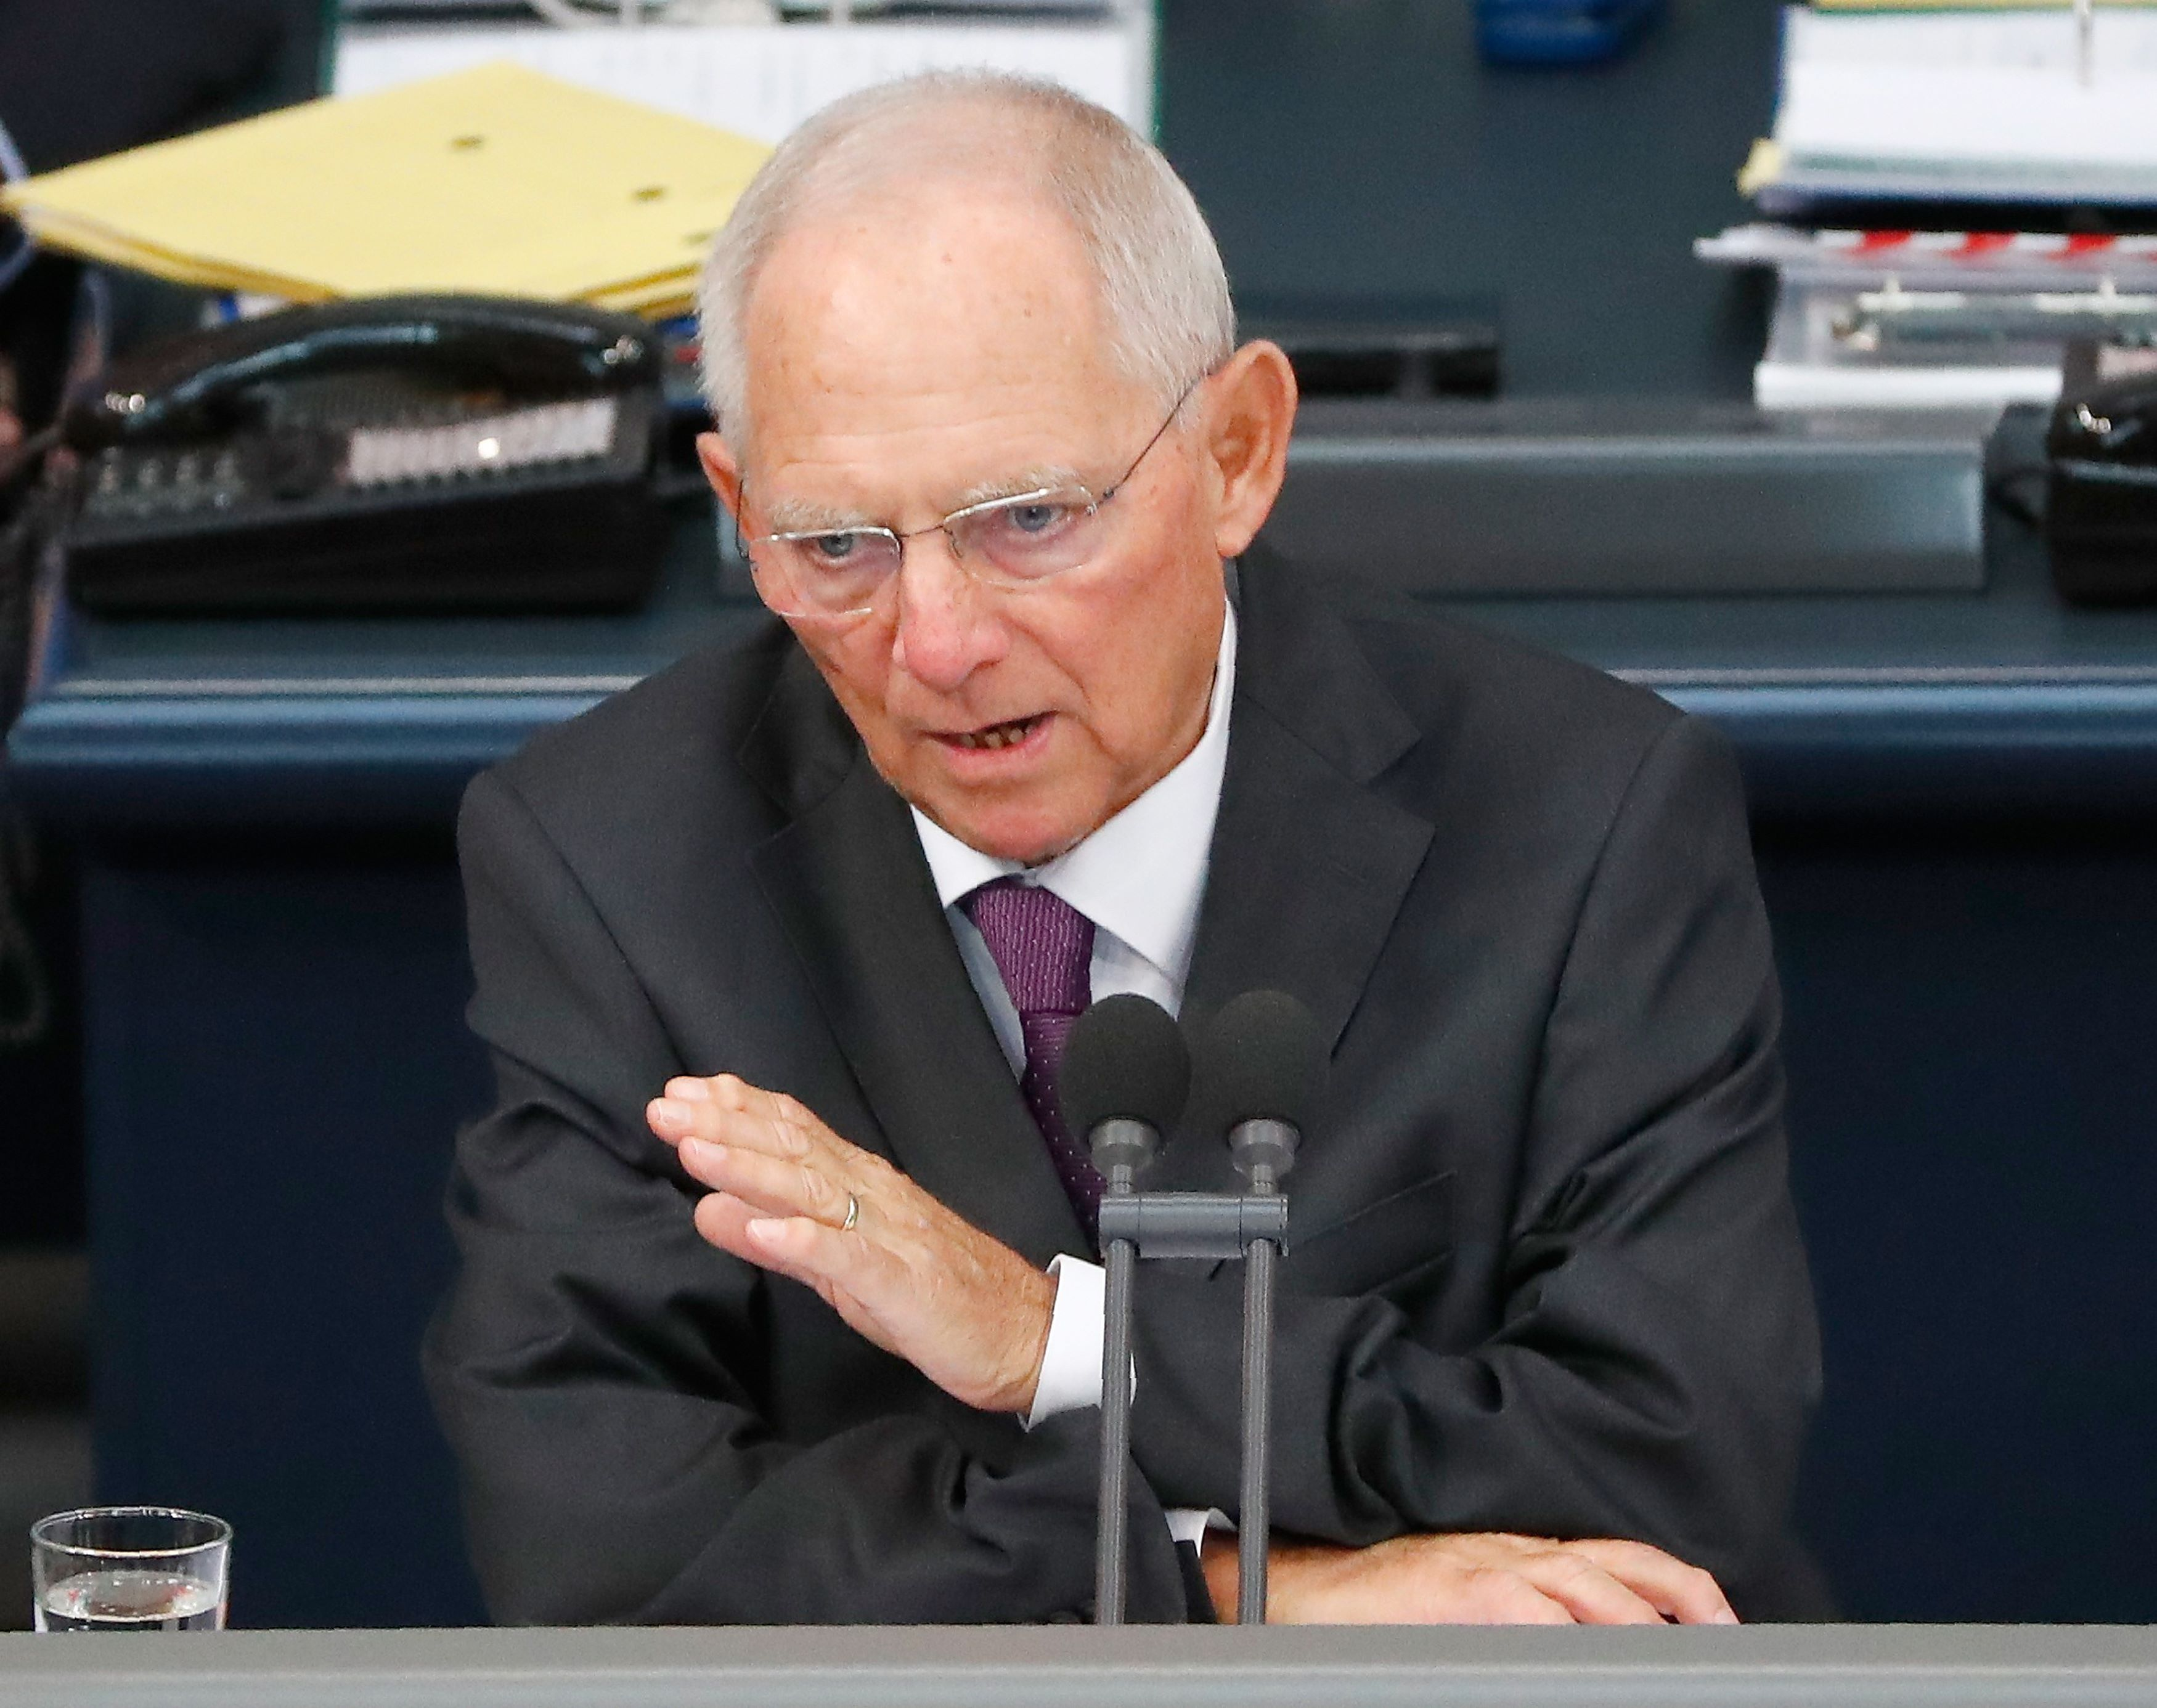 Don't blame others for your problems, Germany's Schaeuble tells Greece